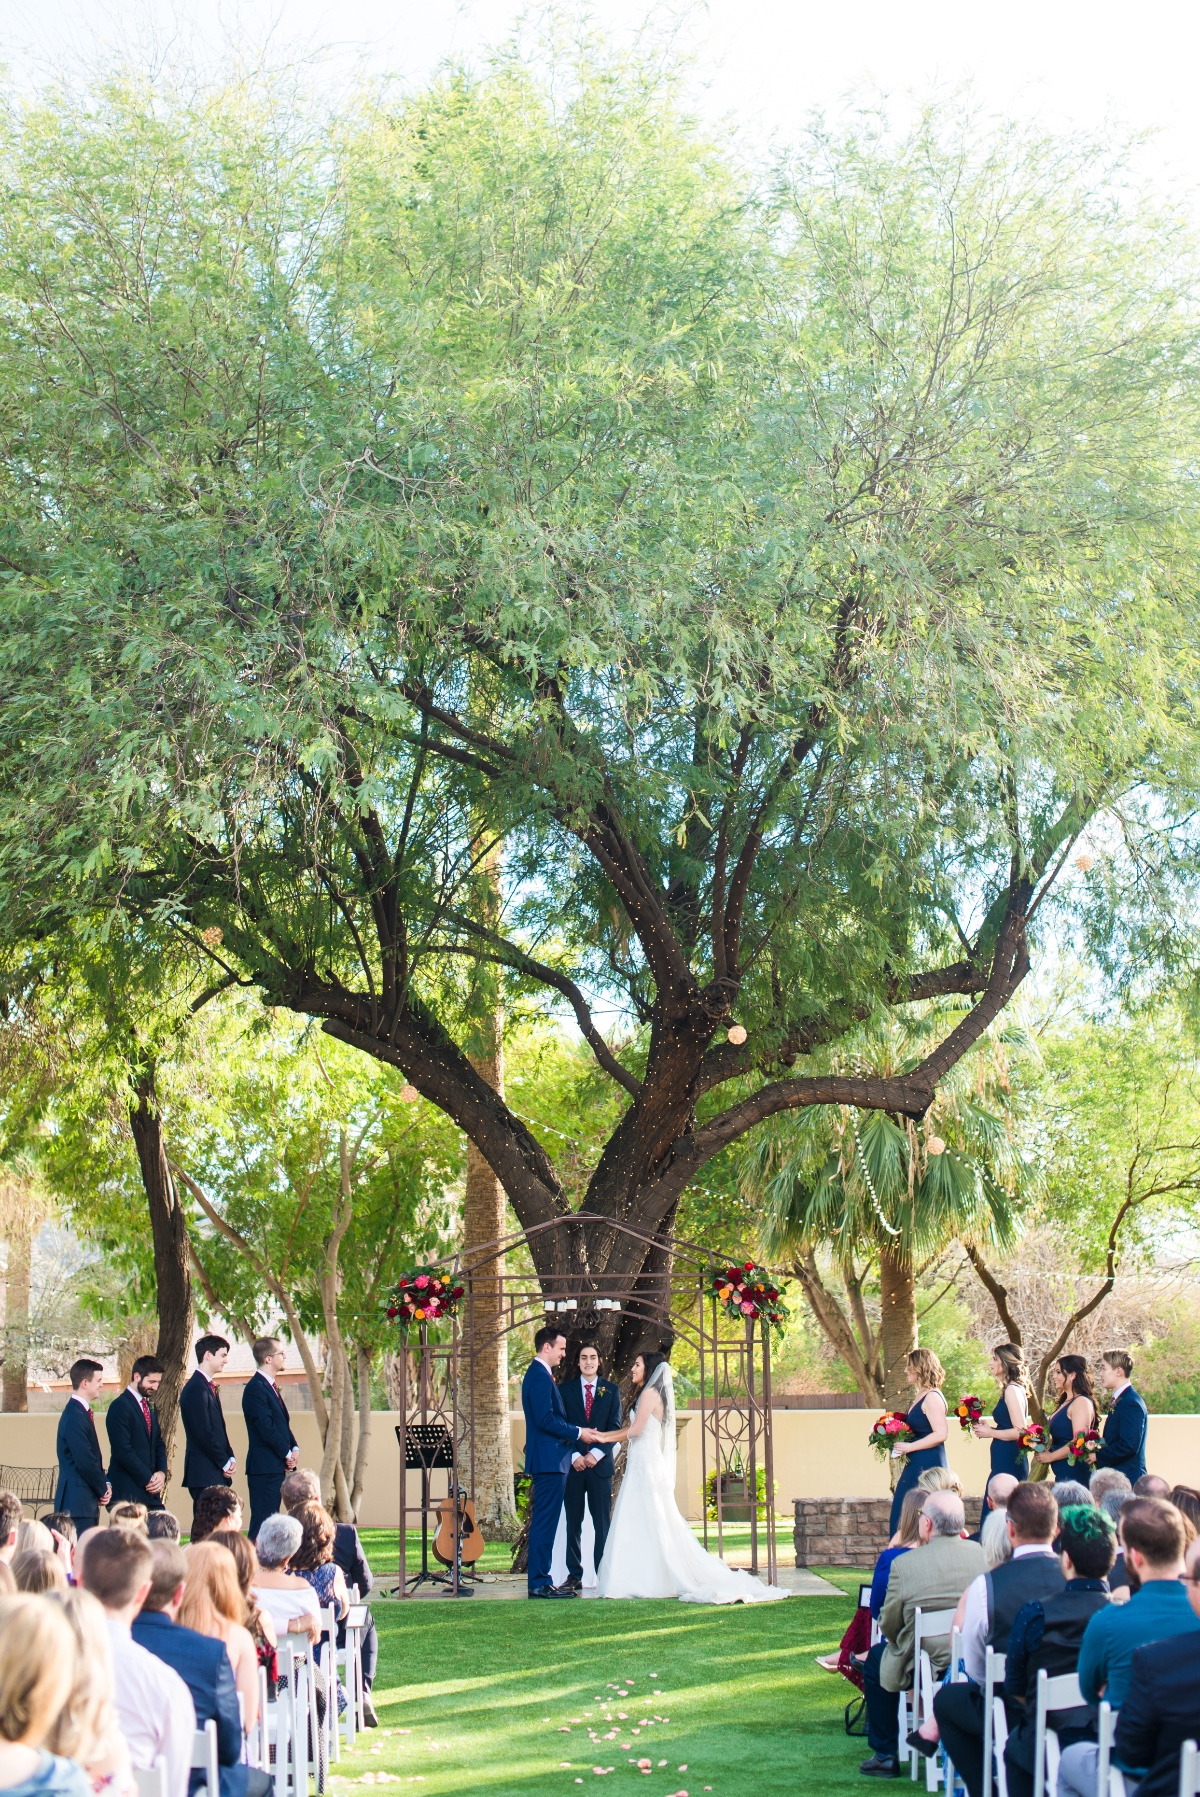 Stylish garden ceremony